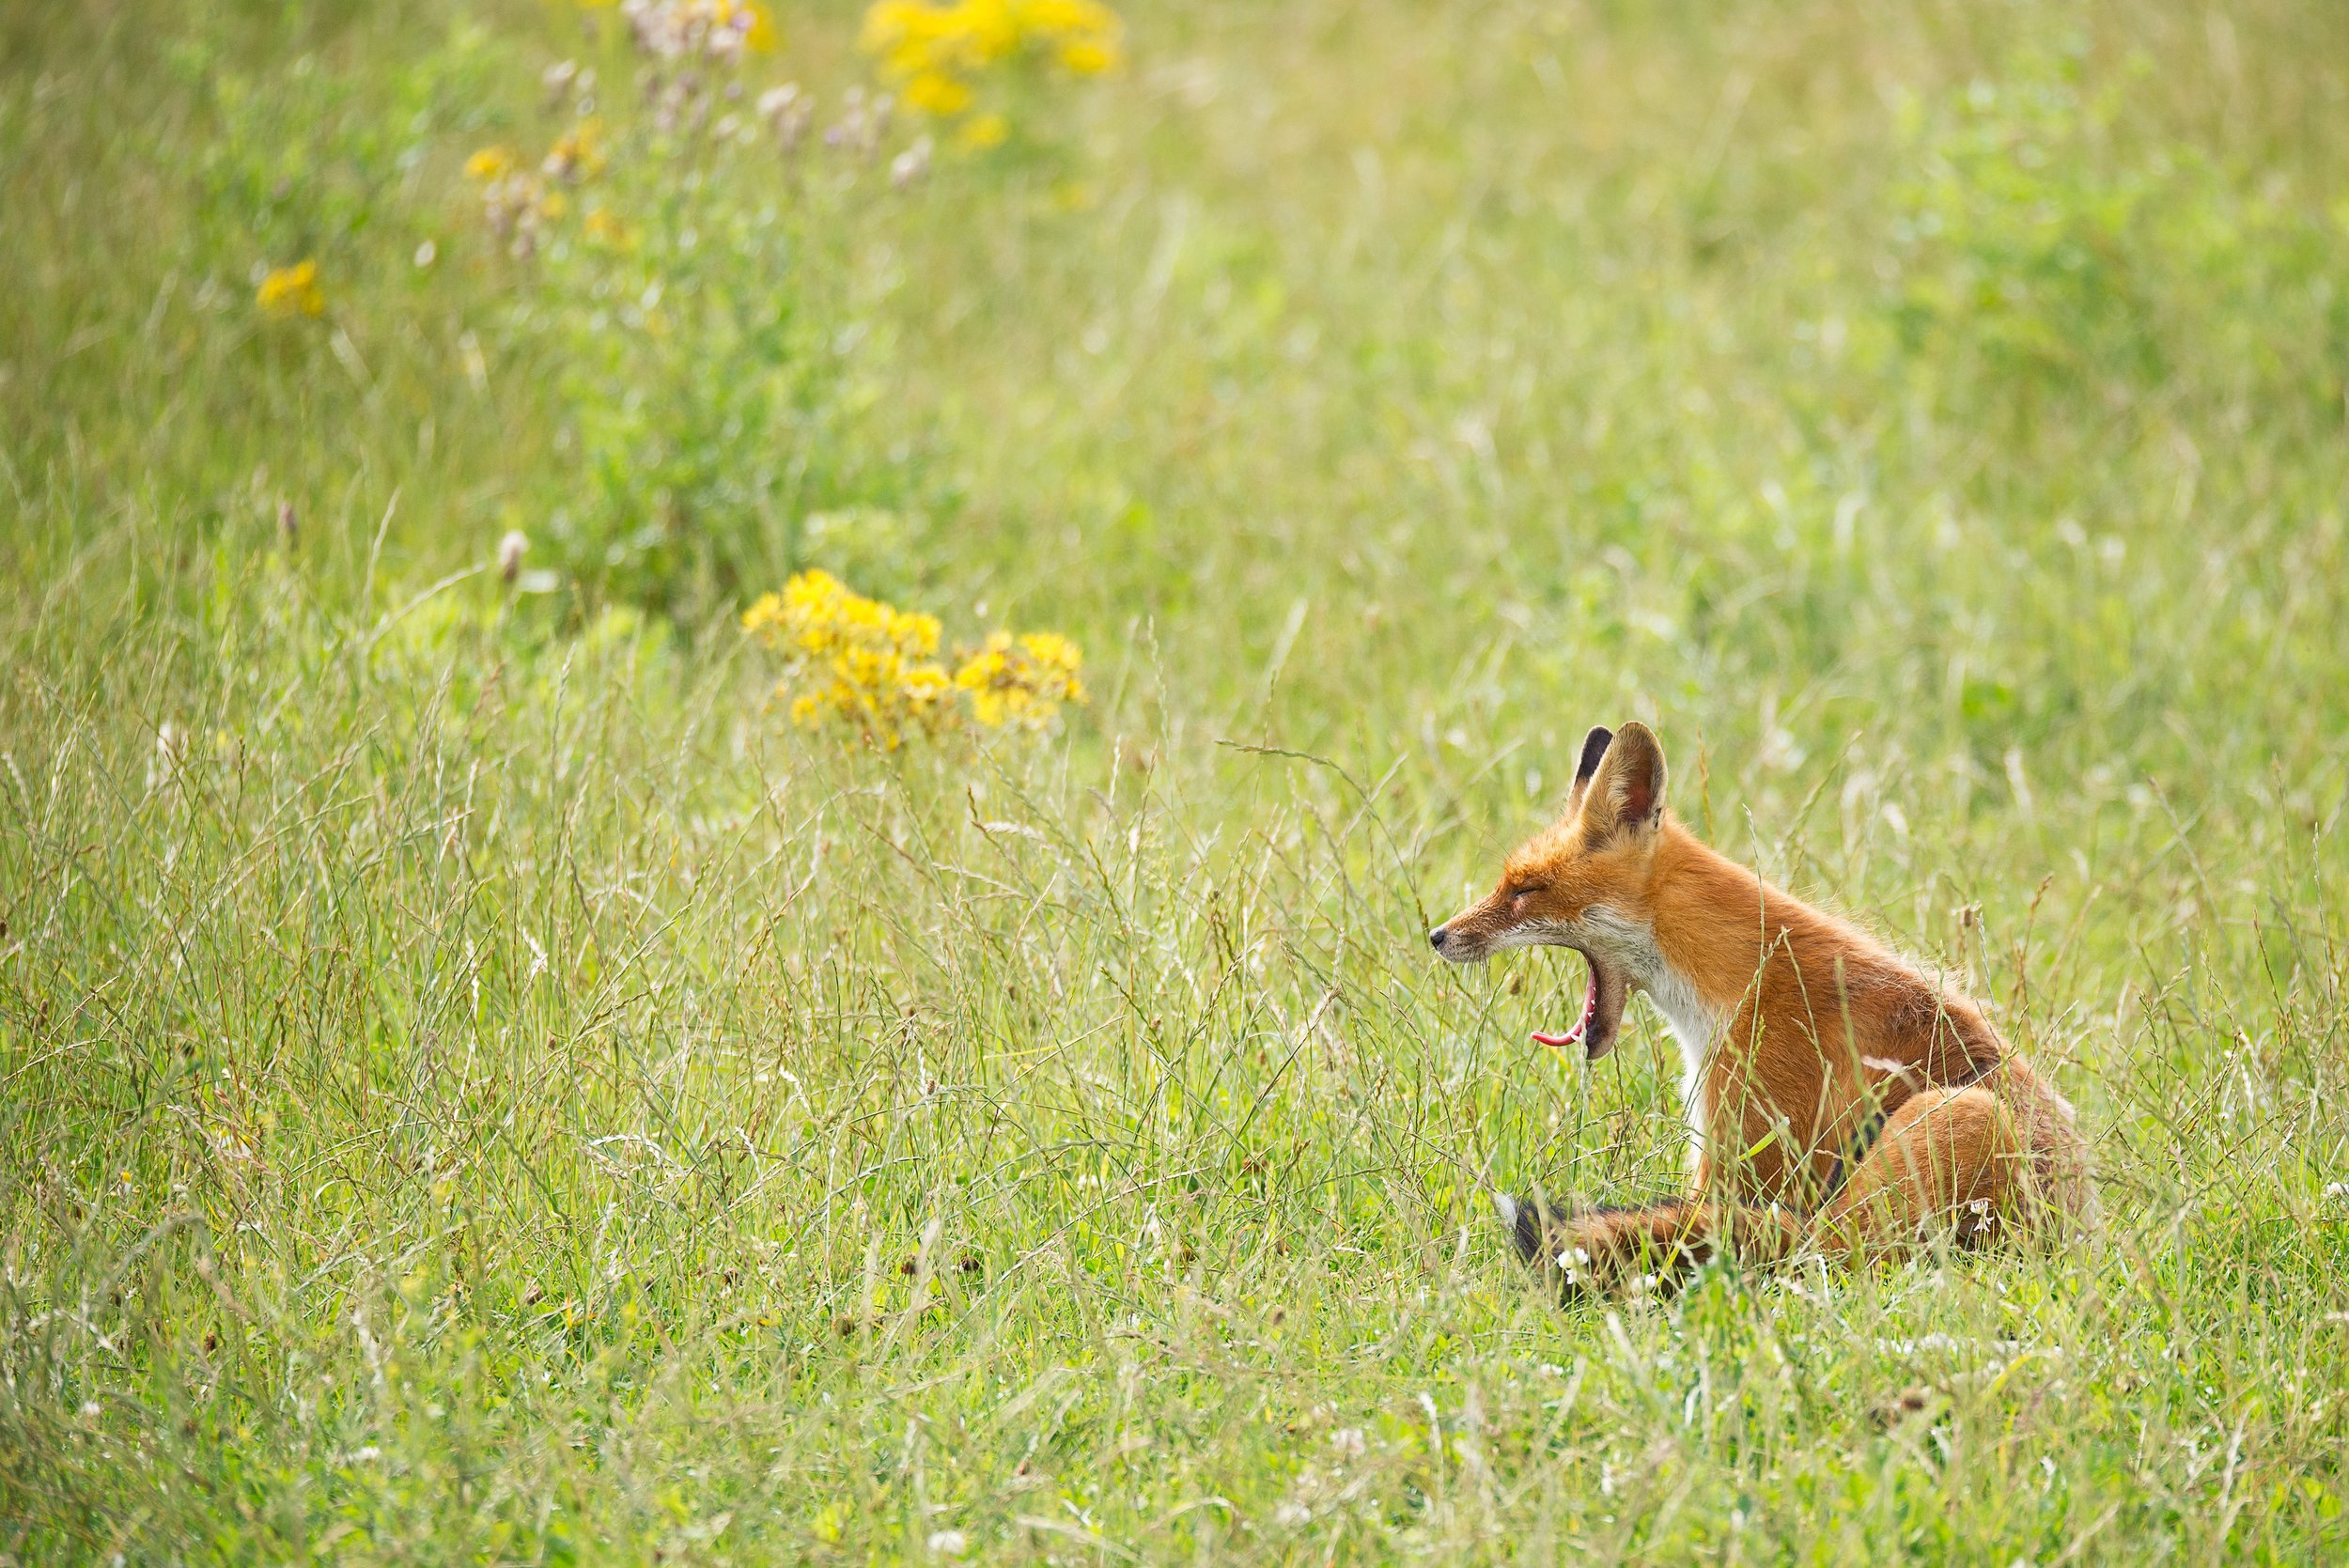 Fox in Field Yawning - Yellowstone National Park - Wyoming Guide Co